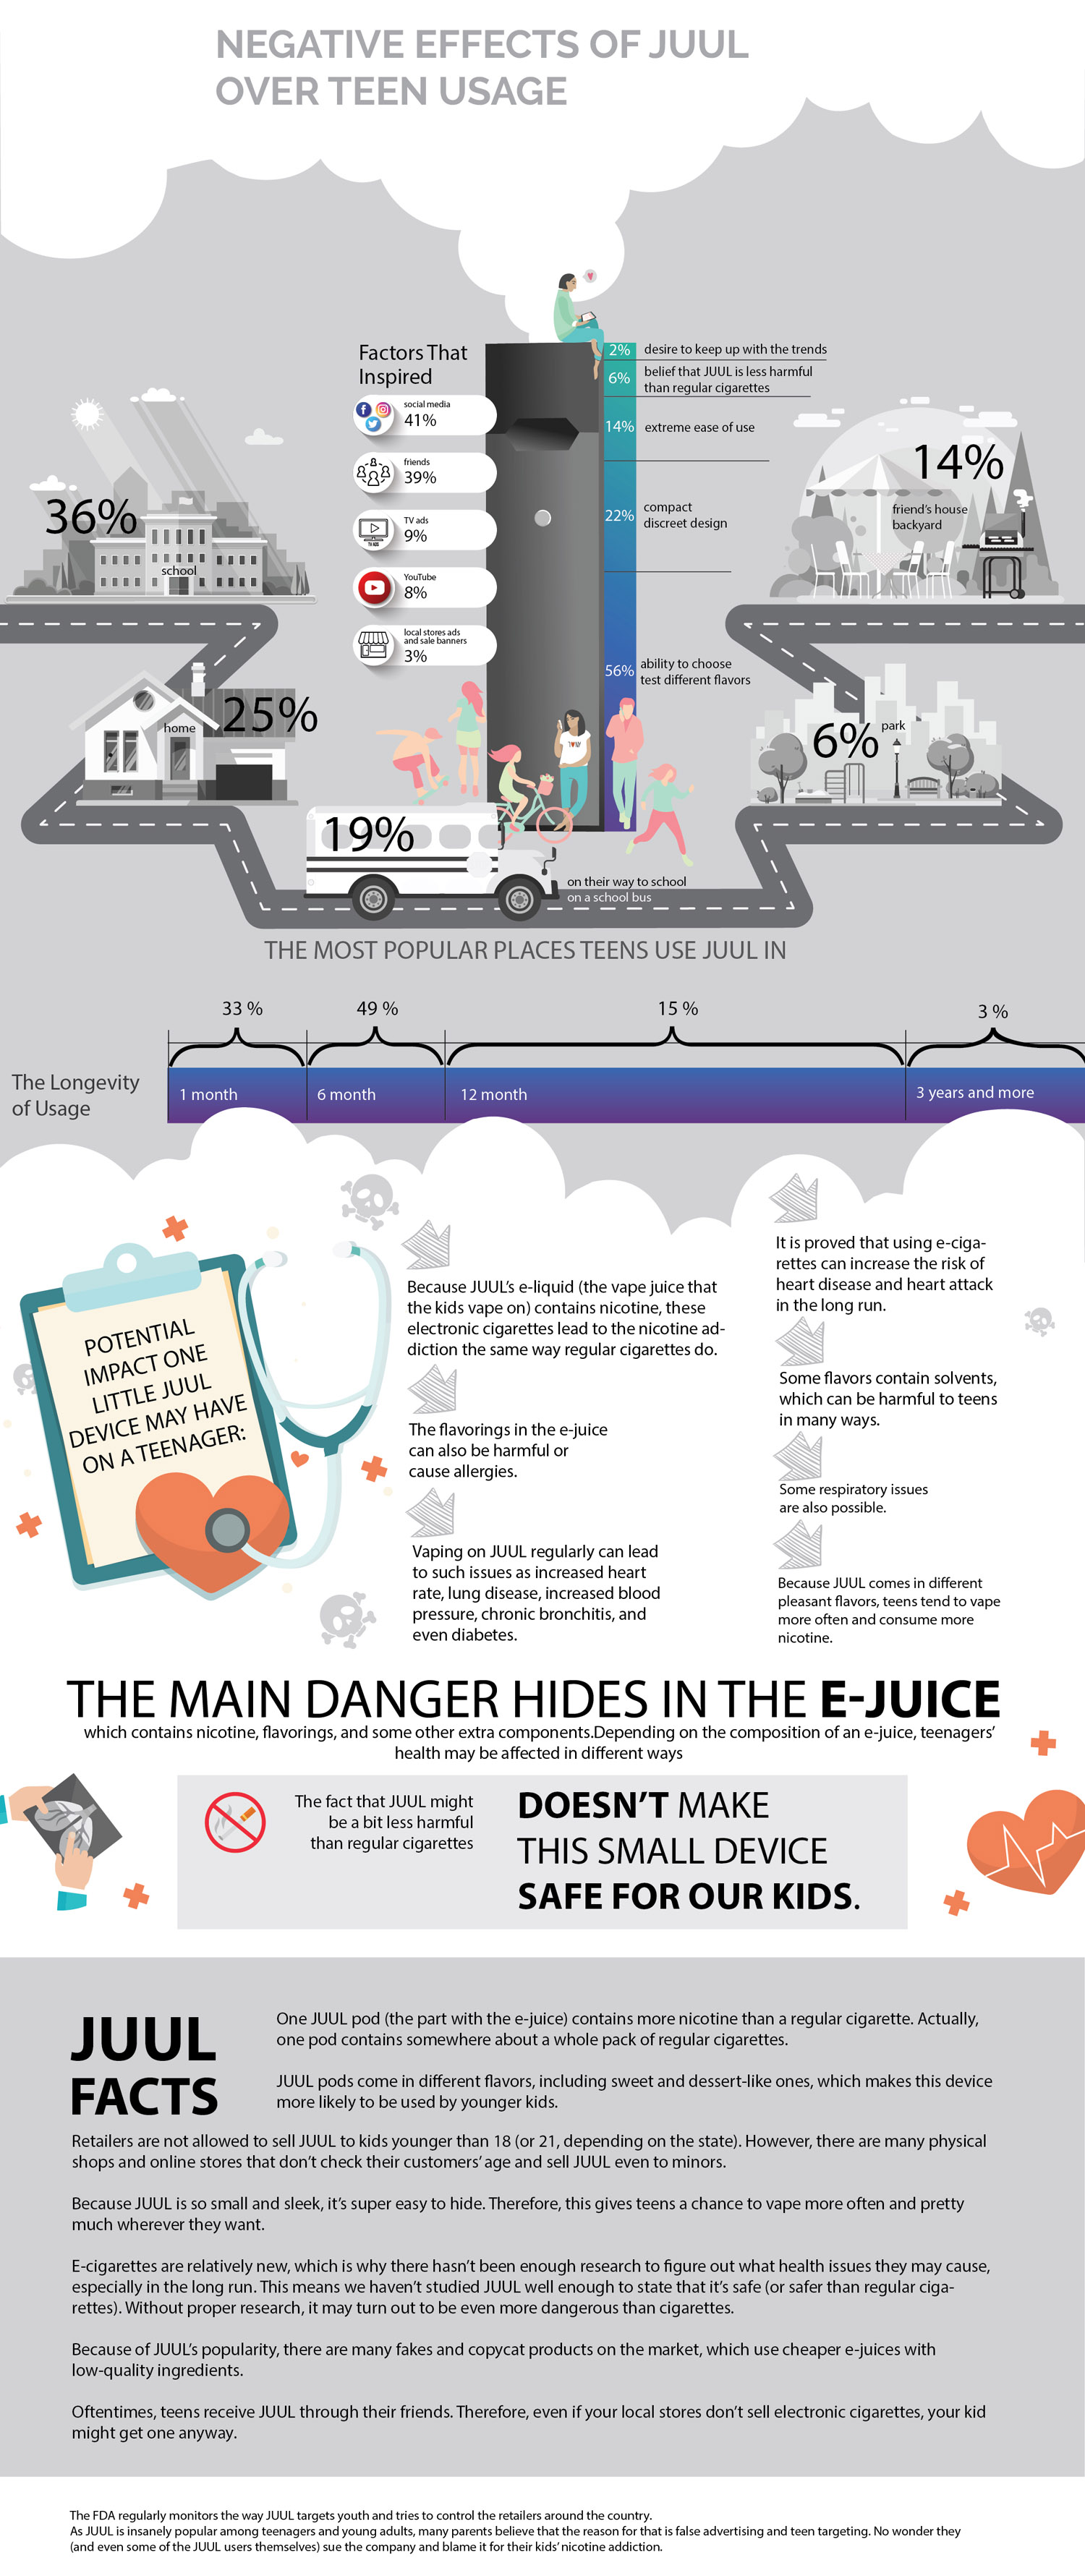 negative effects of Juul on teens infographic